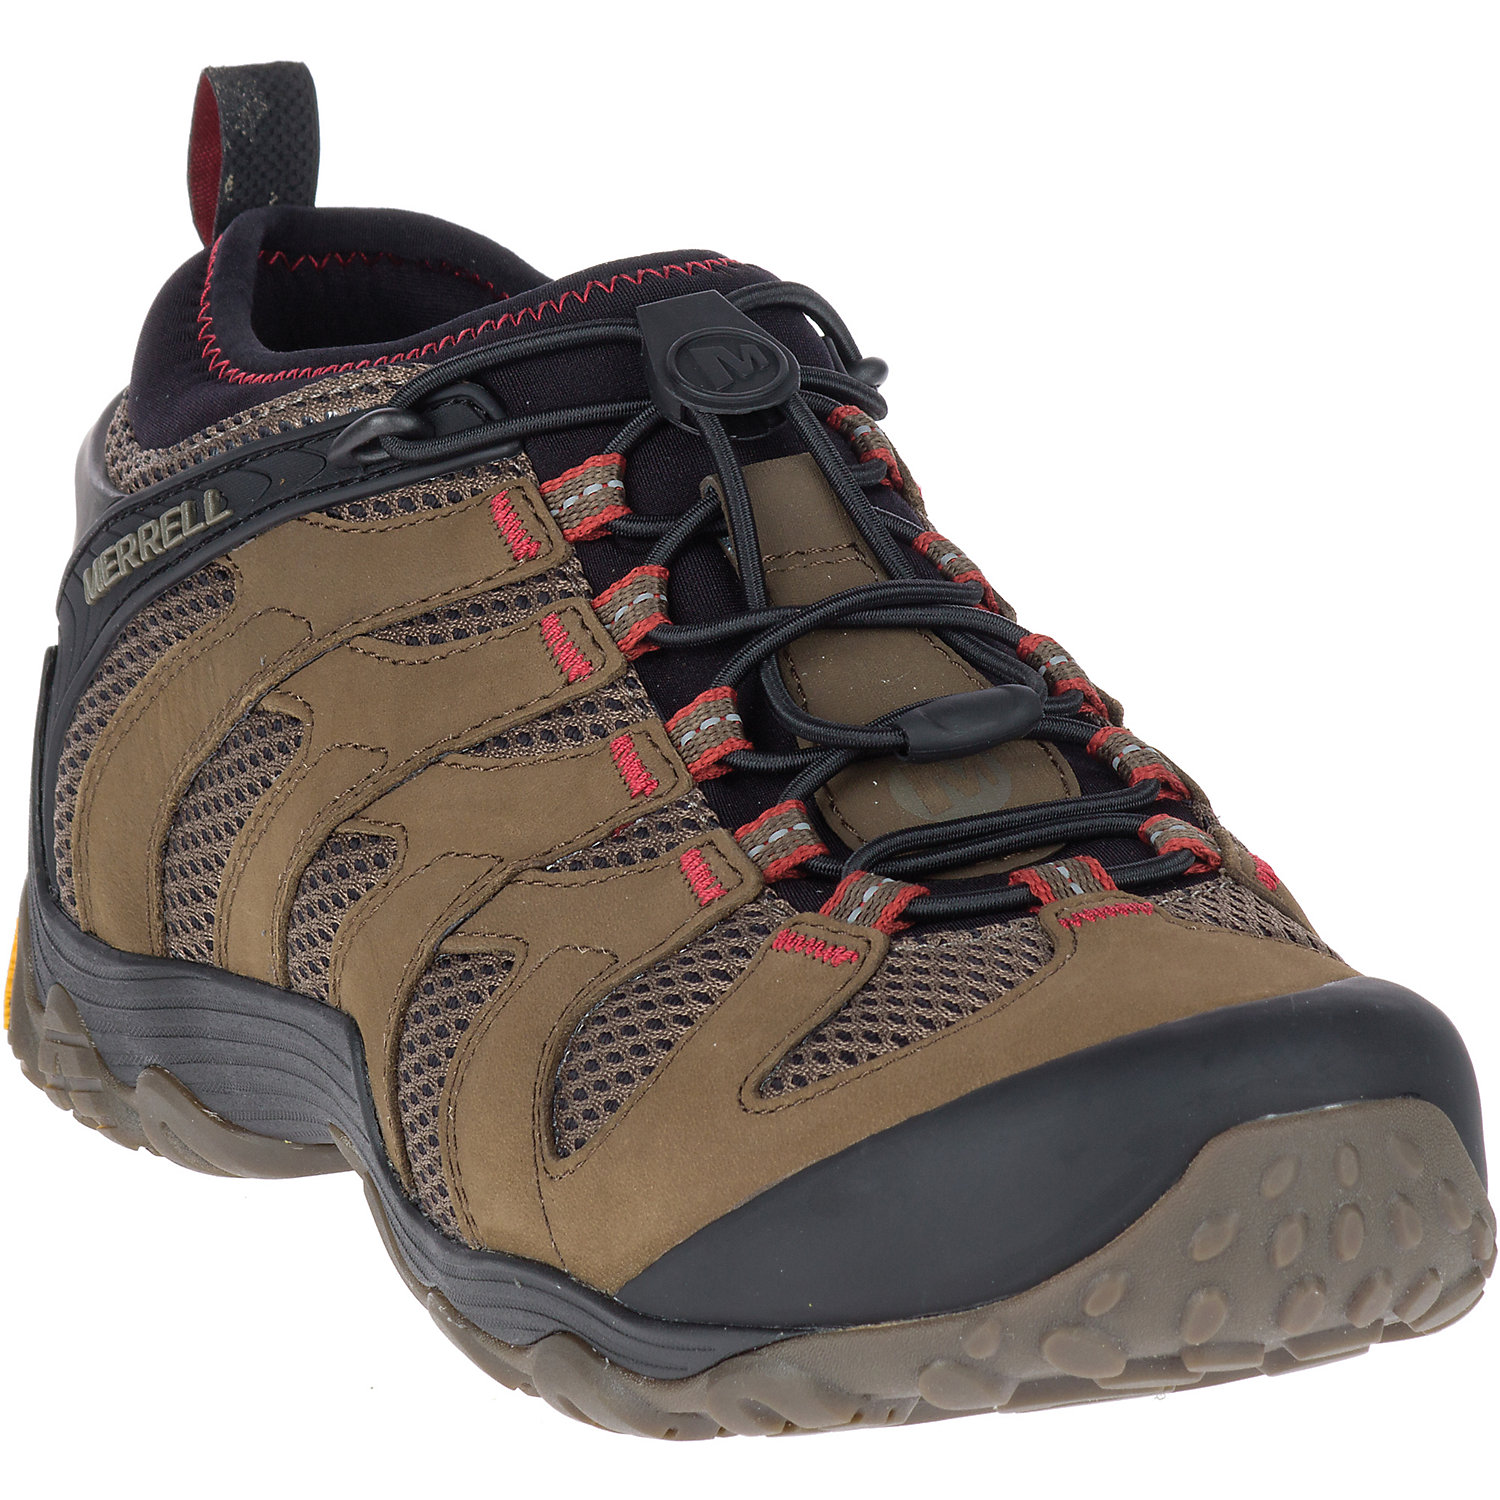 815d9cd1 Merrell Men's Chameleon 7 Stretch Shoe